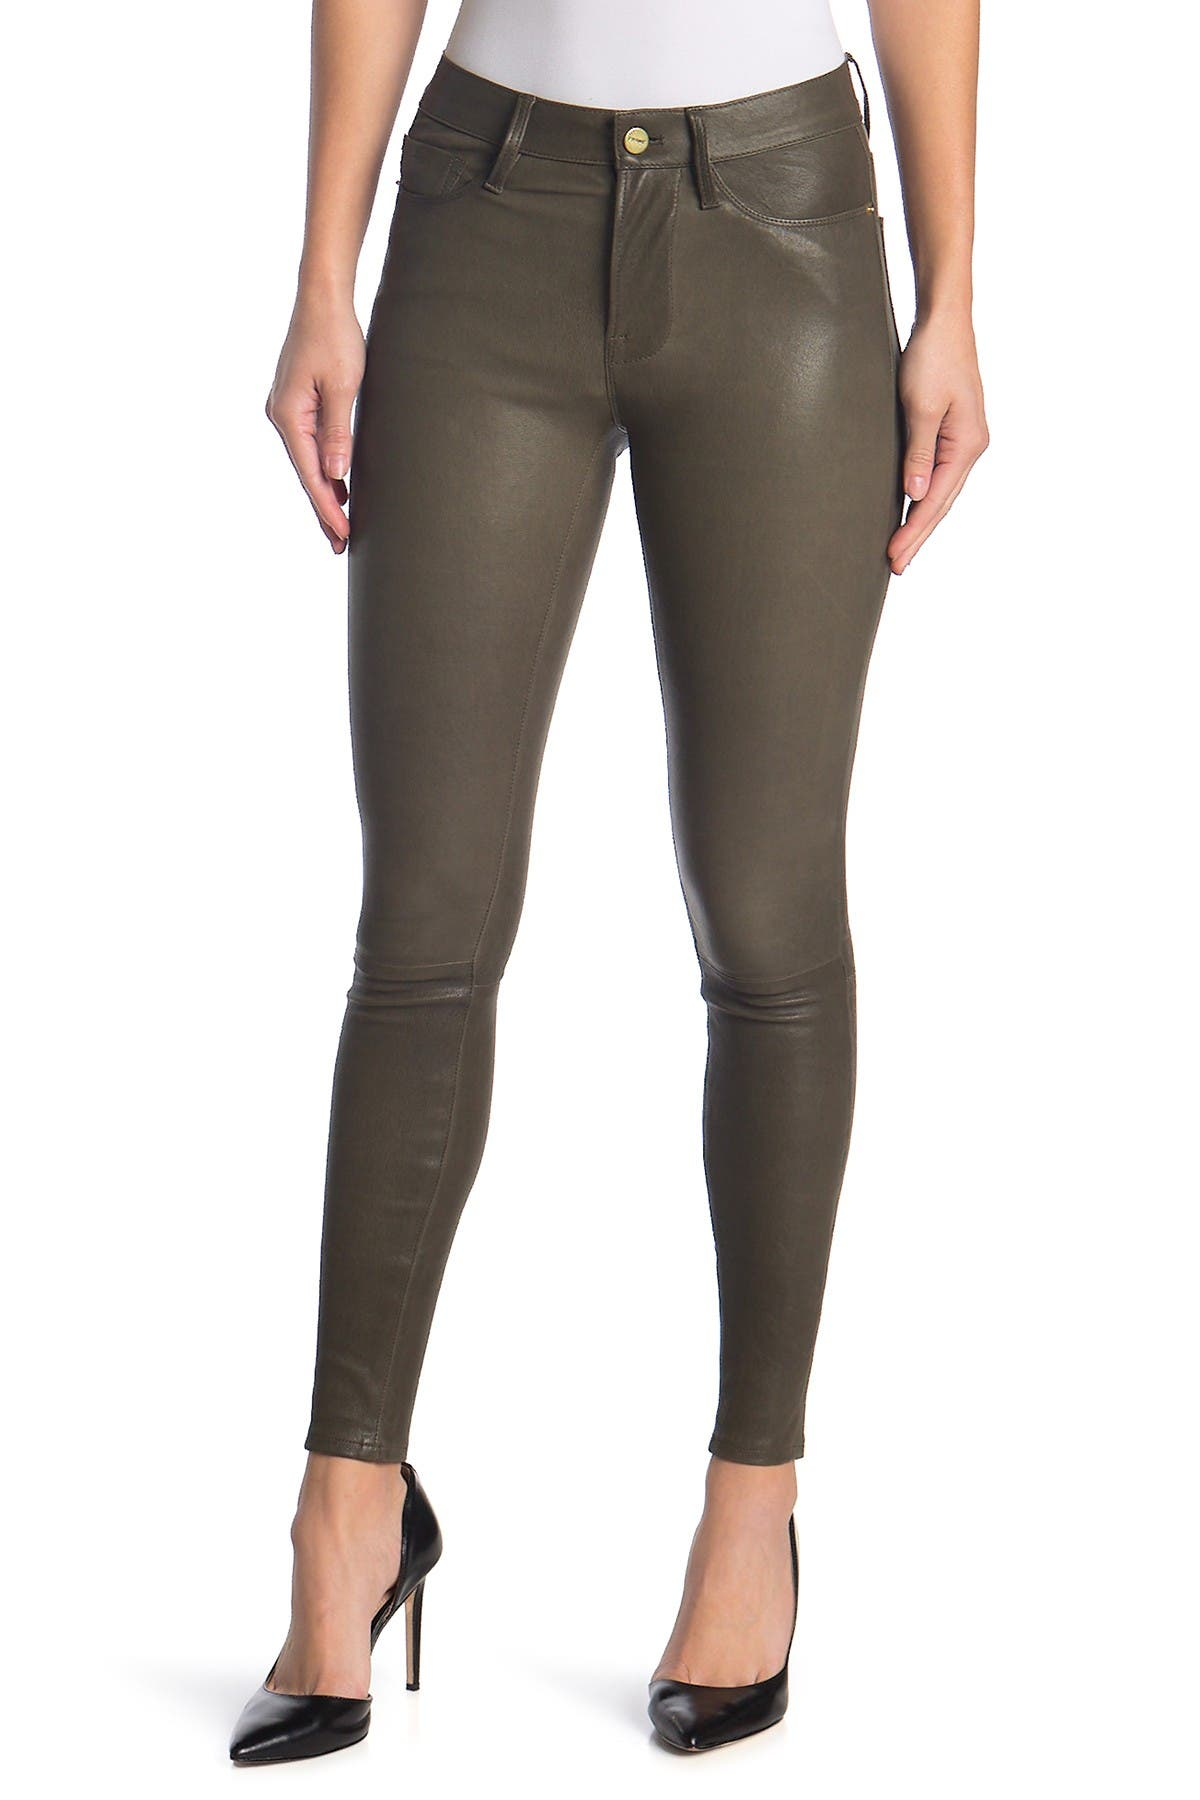 Image of FRAME Le High Leather Skinny Jeans